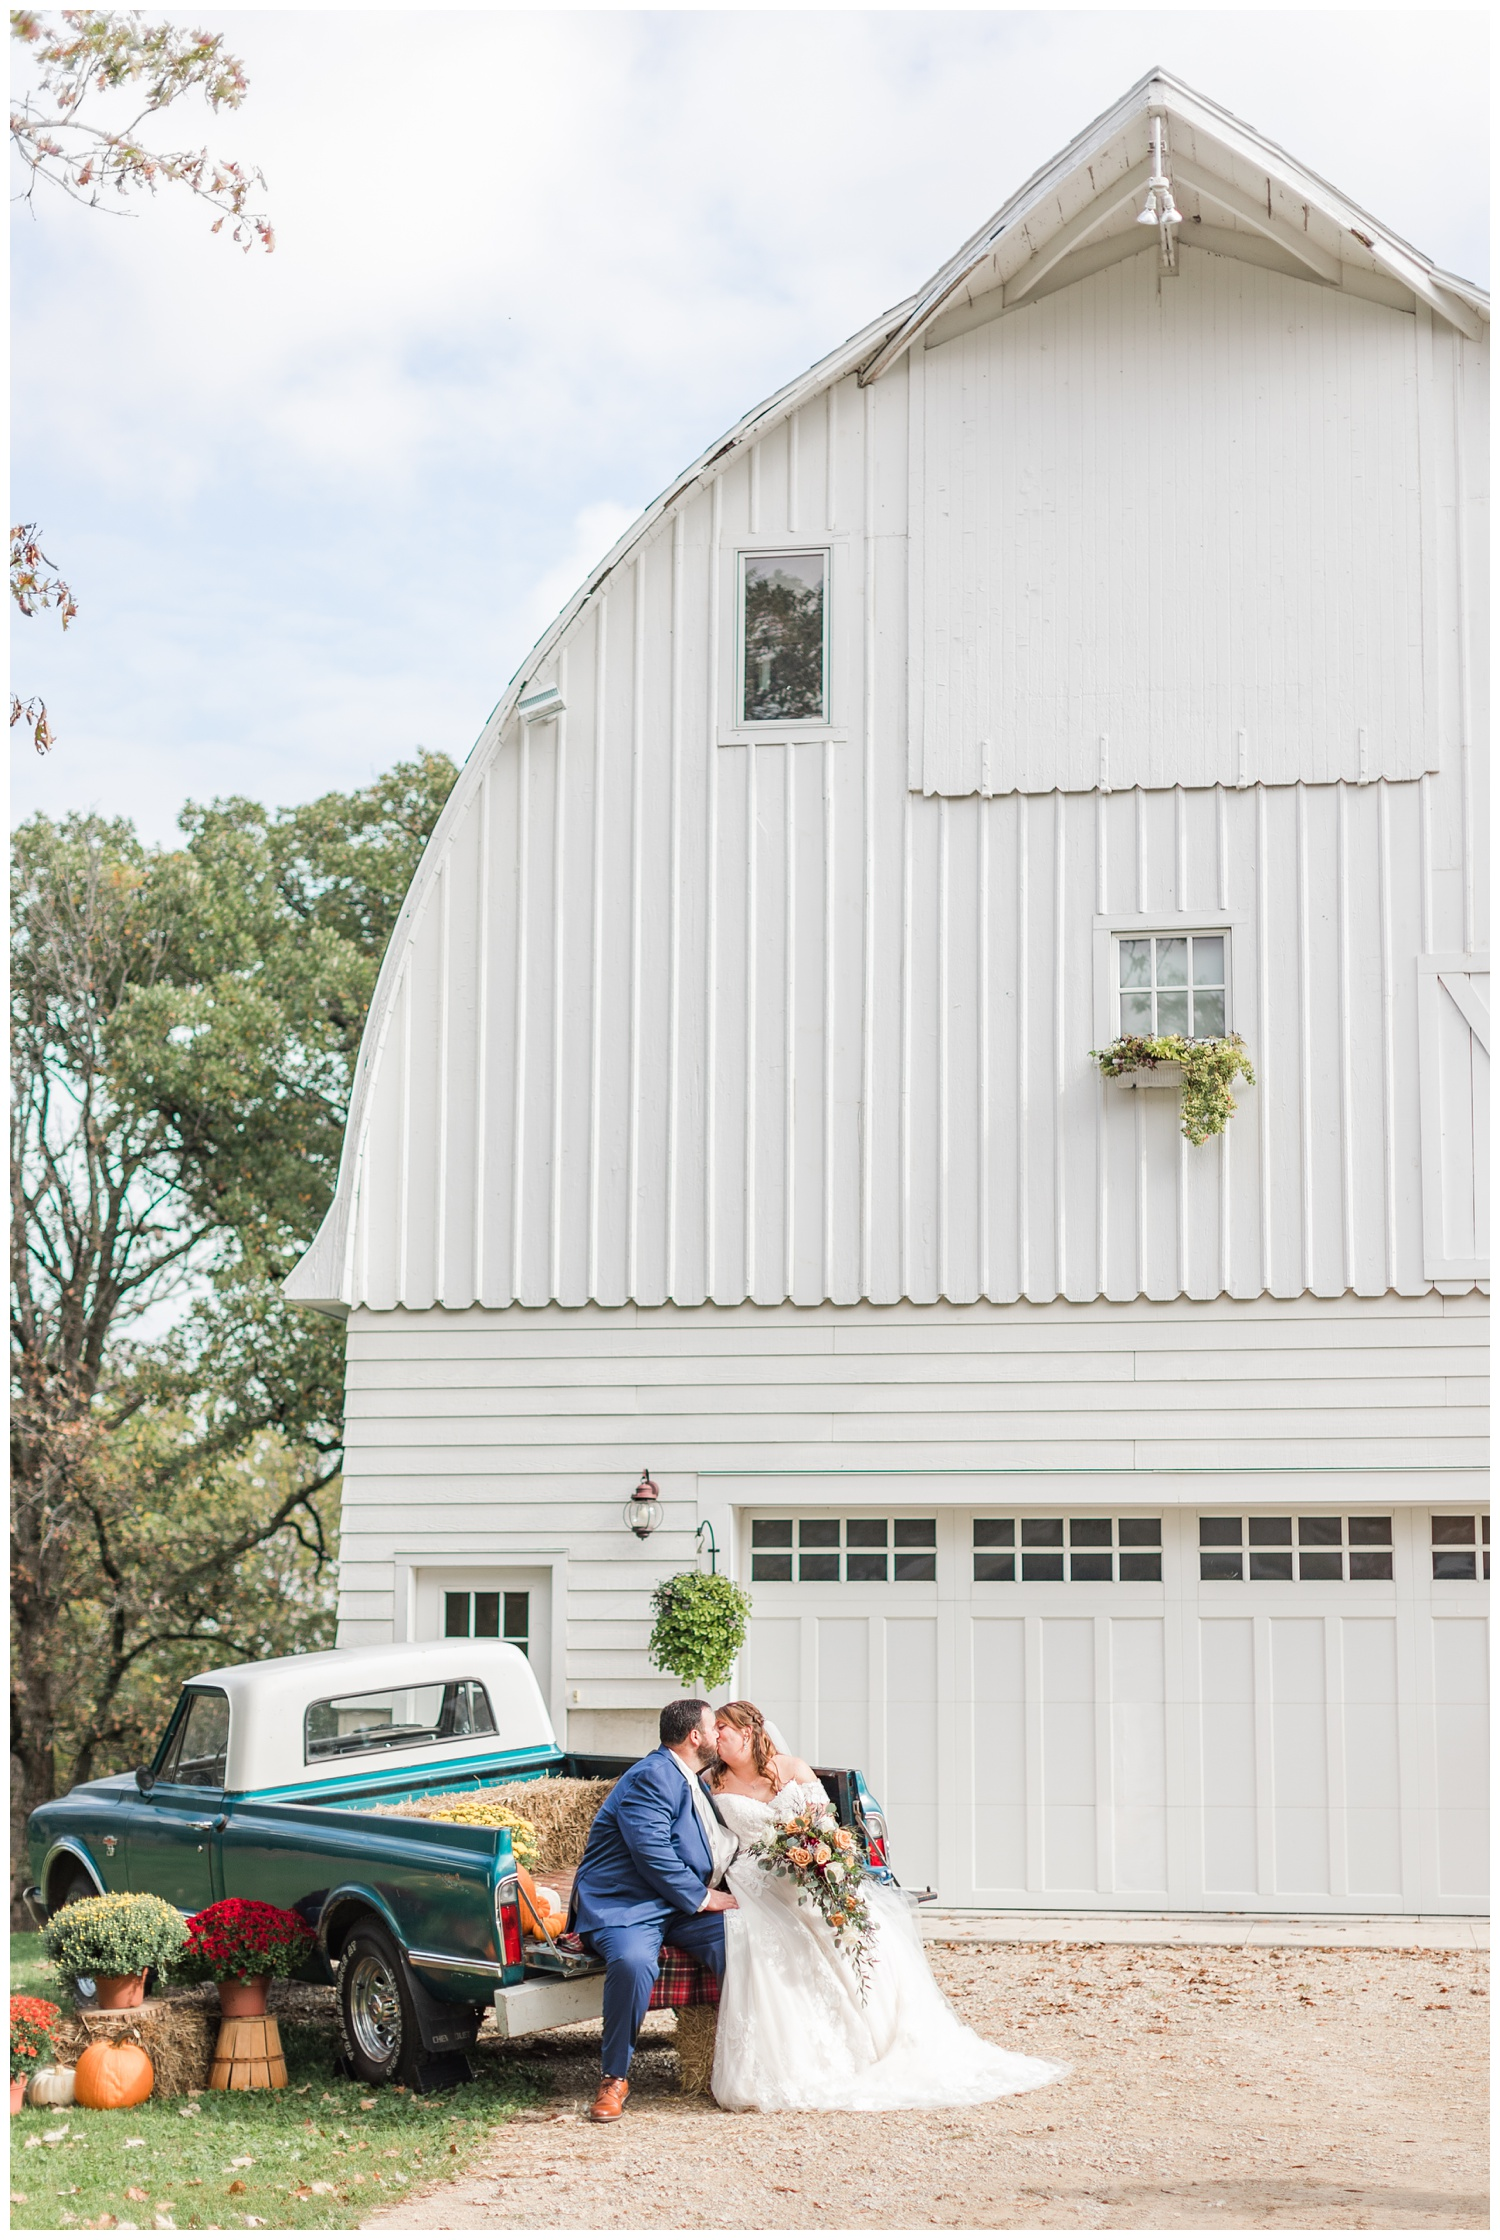 Bride and groom kiss in the back of an old Chevy truck in front of the white barn at Diamond Oak Events | CB Studio